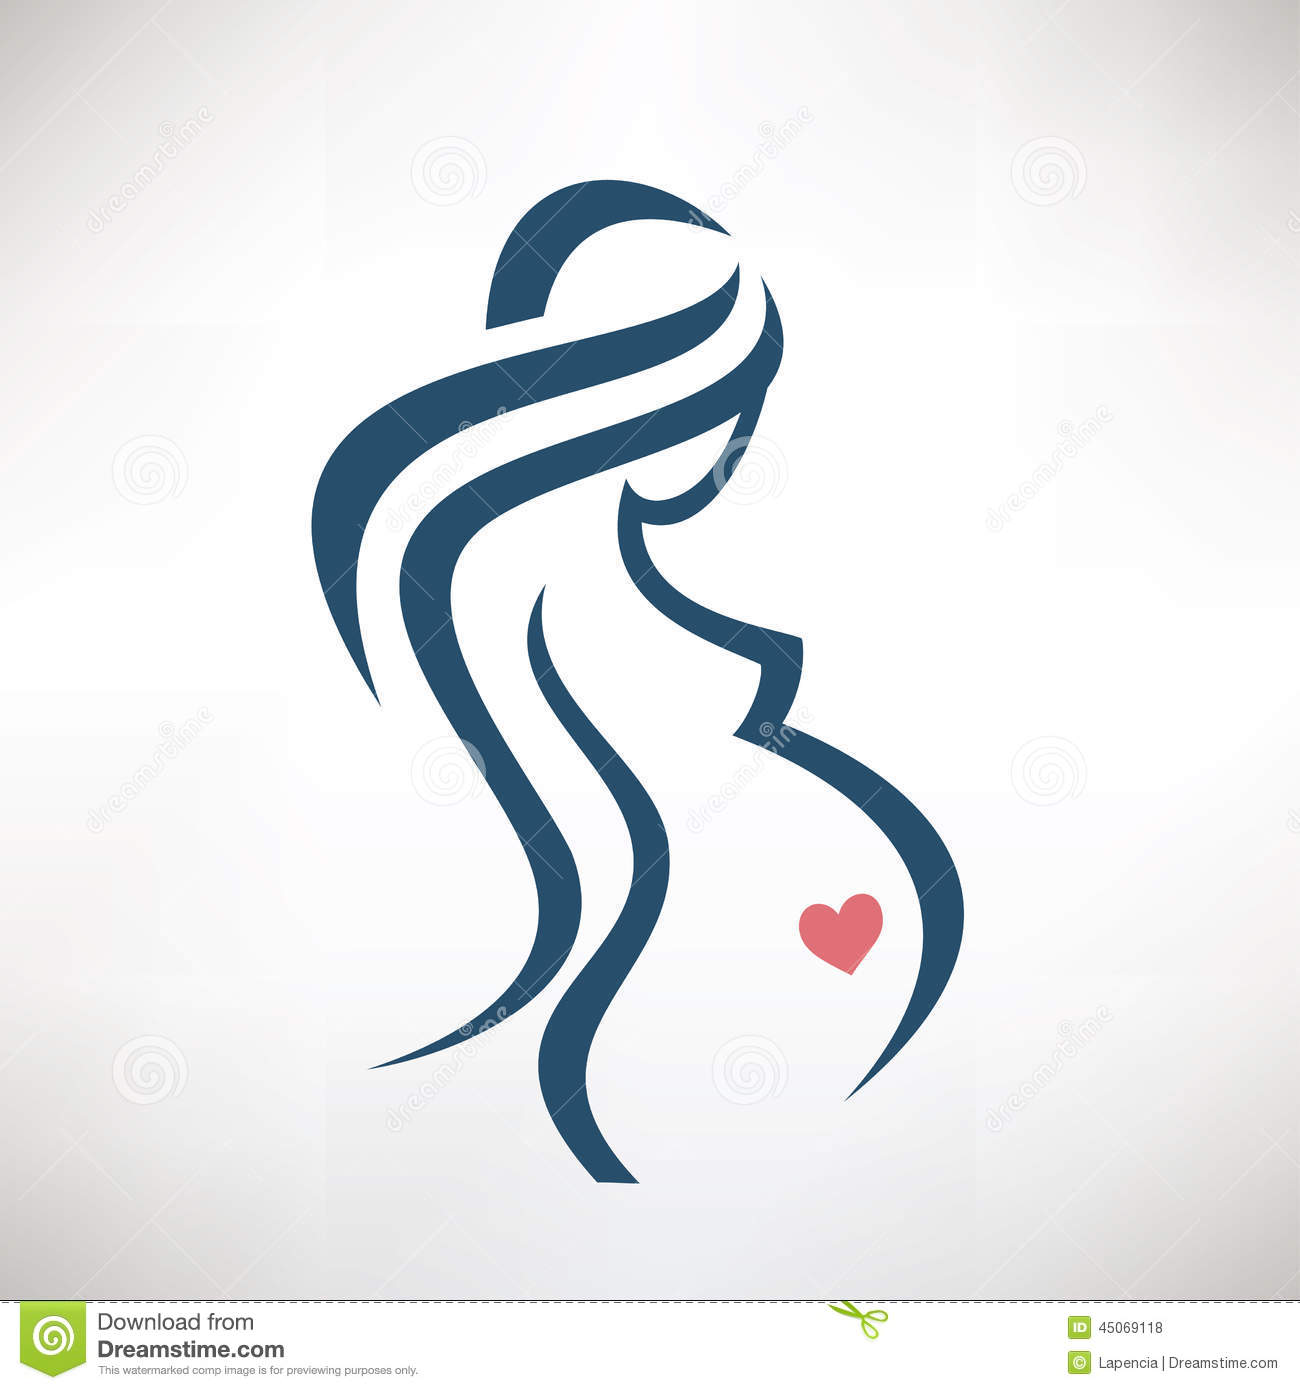 Pregnant Woman Symbol Stock Vector Illustration Of Belly 45069118